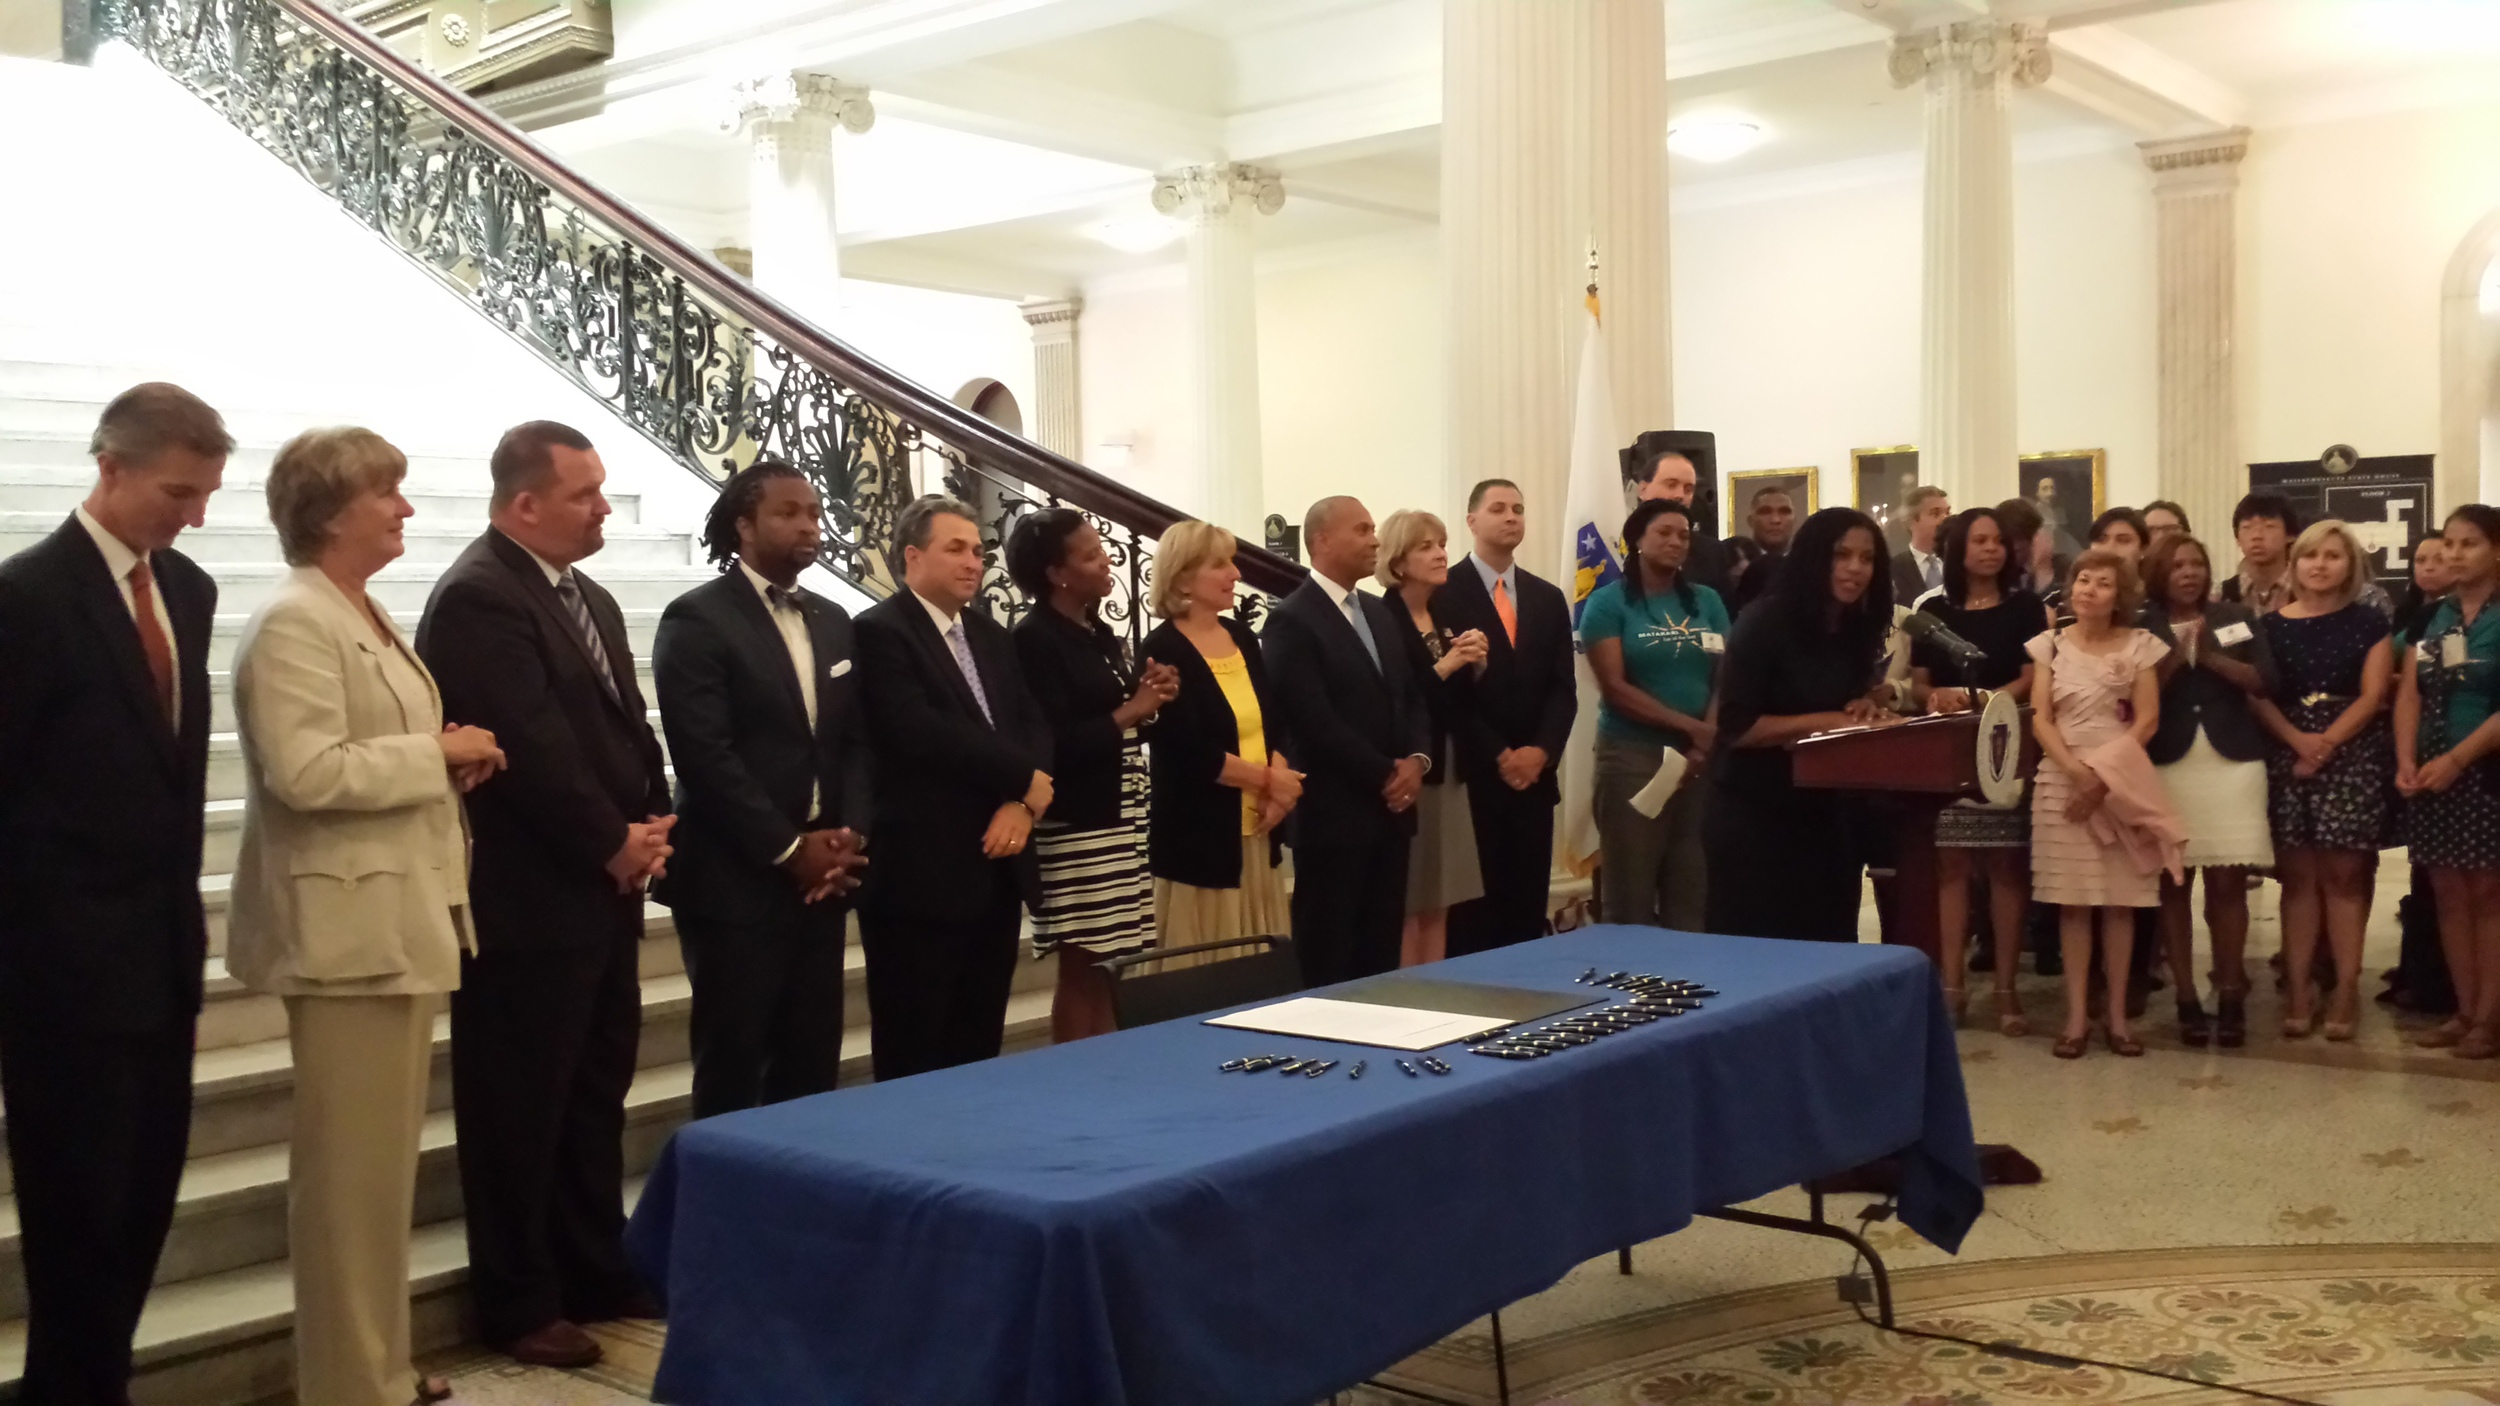 Lydia Edwards (speaking) and other coalition membersat the signing of the Domestic Workers Bill of Rights(Governor Patrick to Lydia's right)